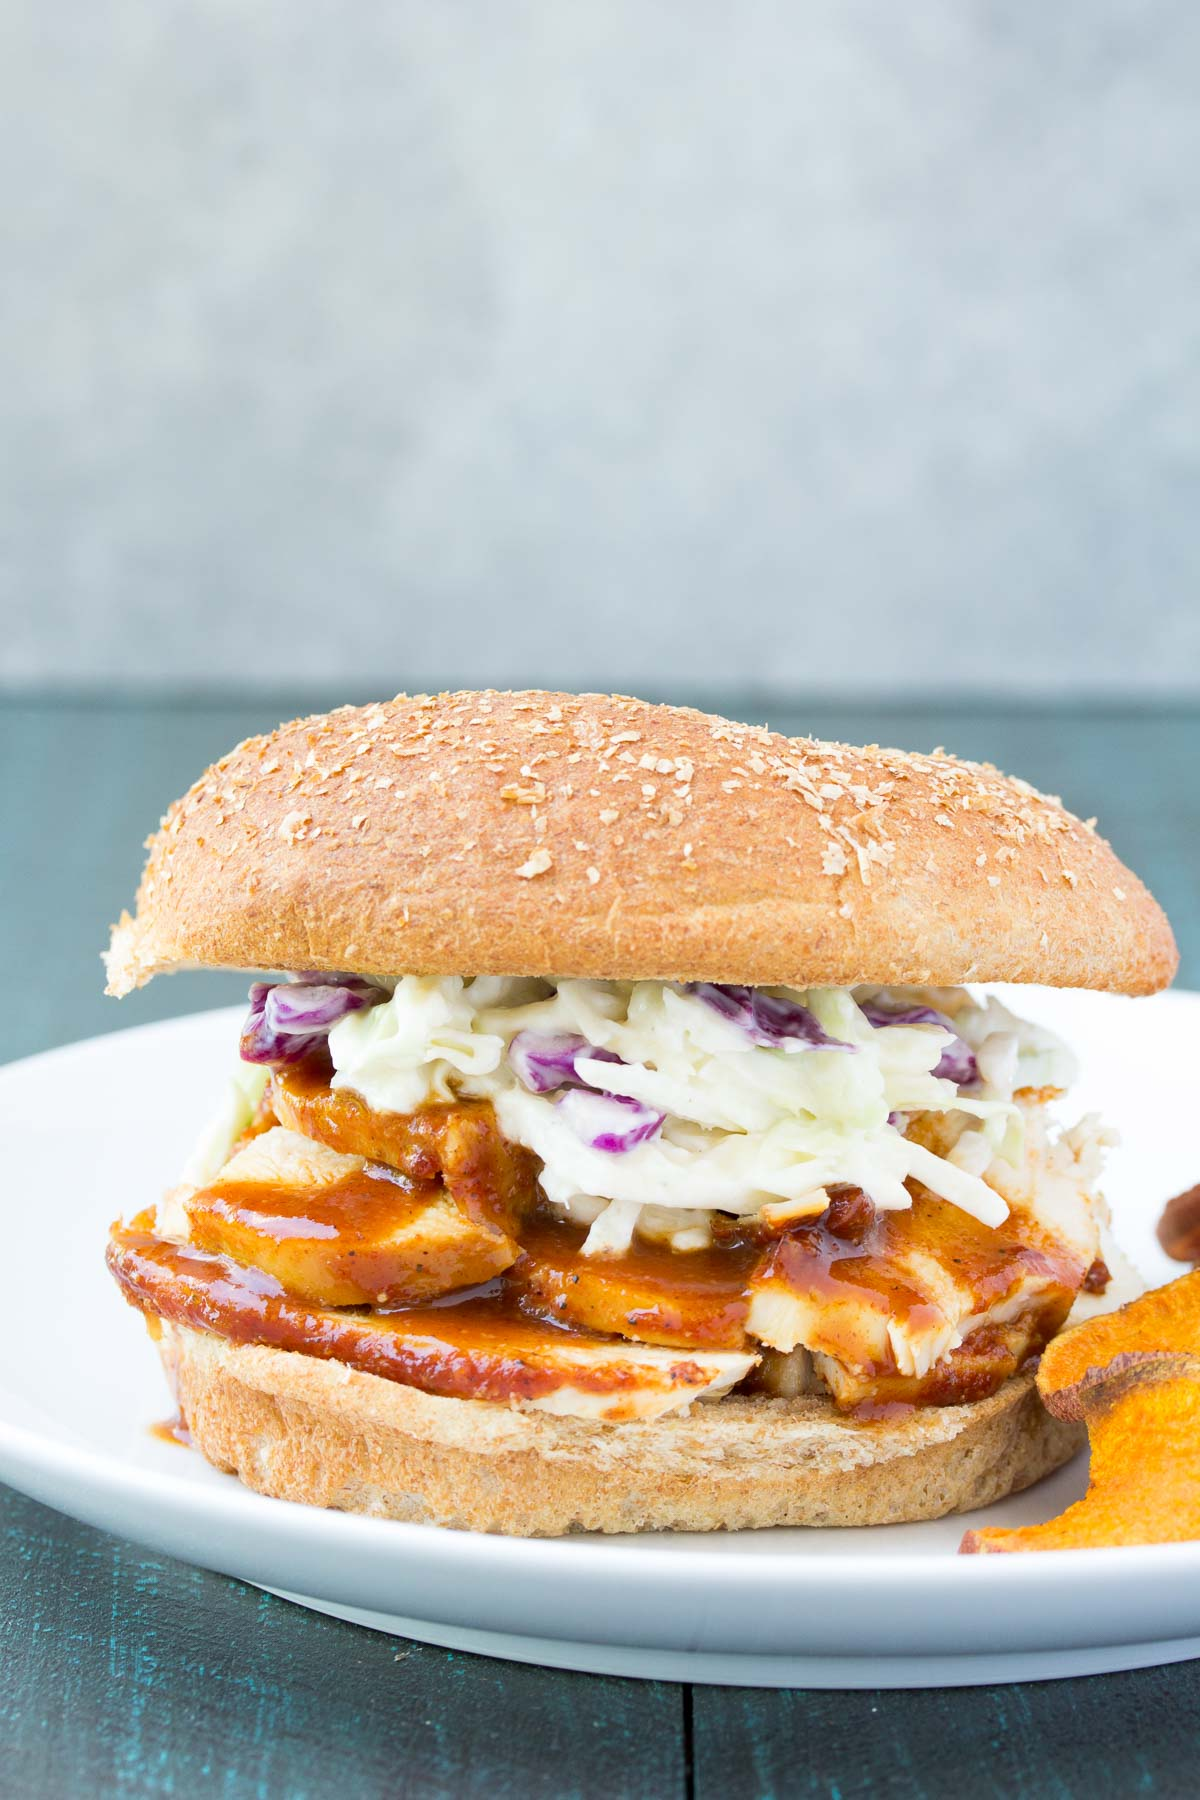 These Slow Cooker BBQ Chicken Sandwiches are an easy dinner that your family will love! The pulled chicken cooks in a homemade barbecue sauce in your crock pot. Plus, a recipe for easy, no mayo homemade coleslaw! These can be made into sliders for the perfect party food!